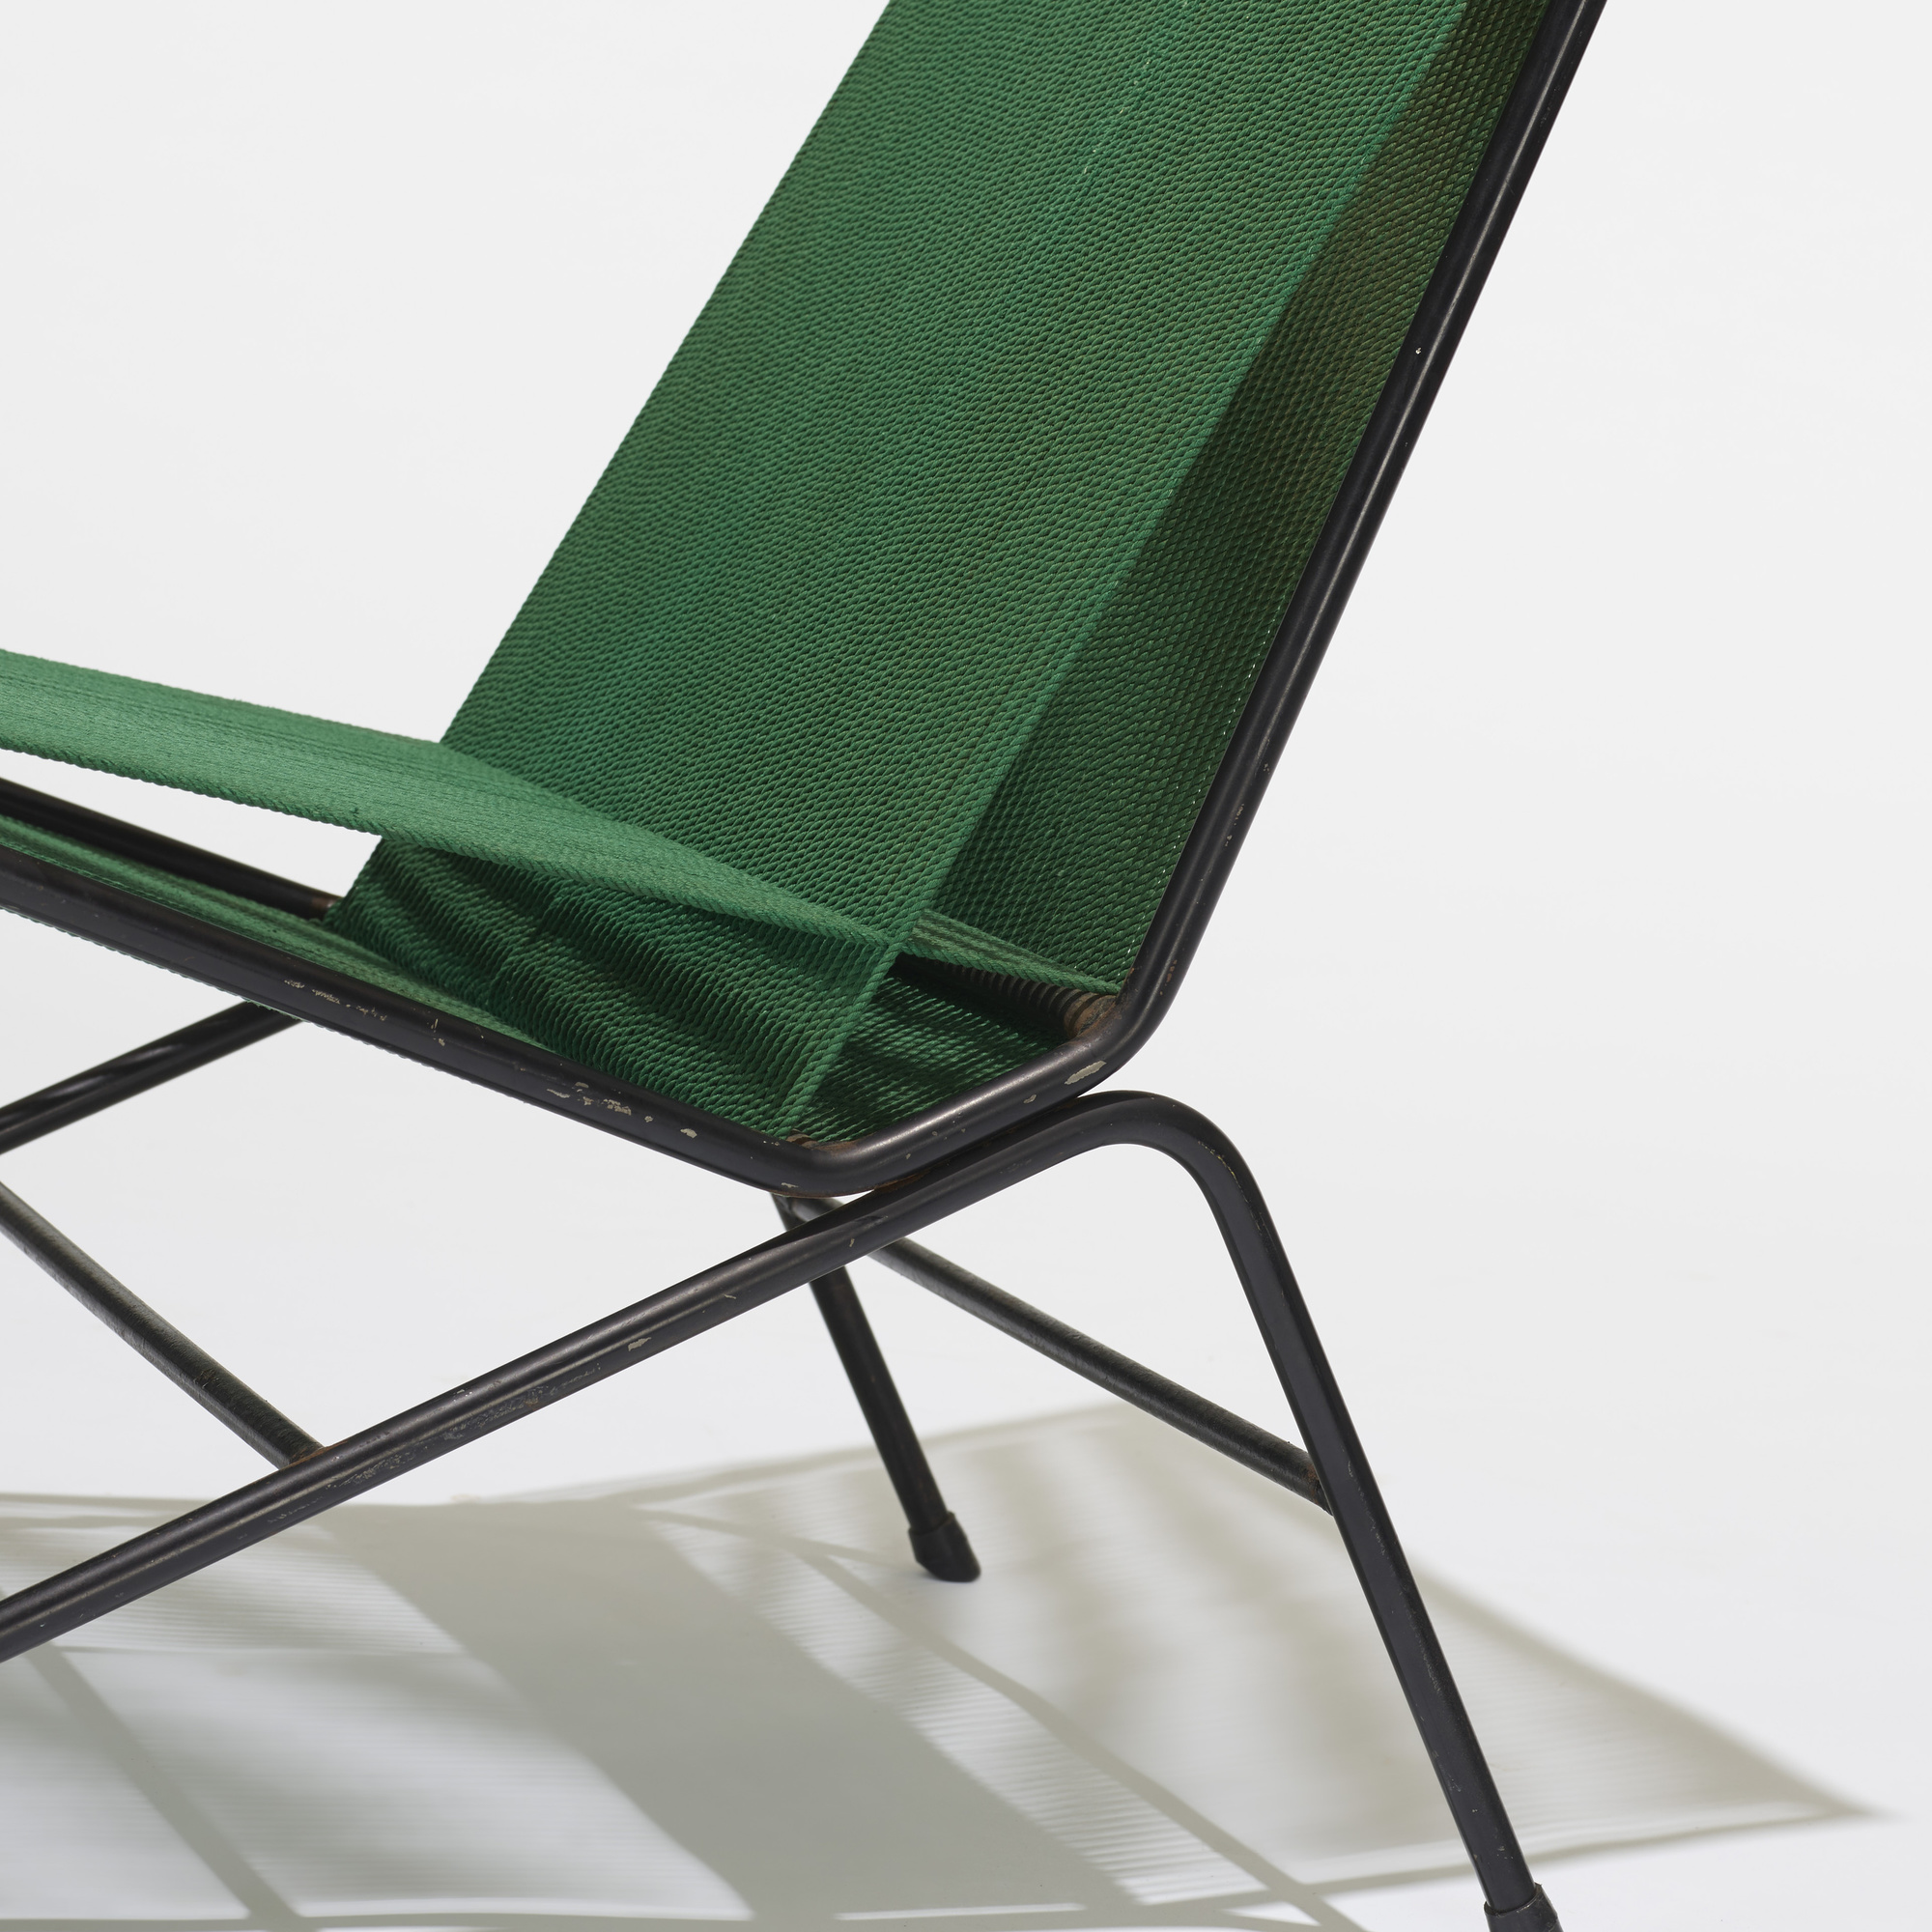 215: Allan Gould / lounge chair (3 of 3)